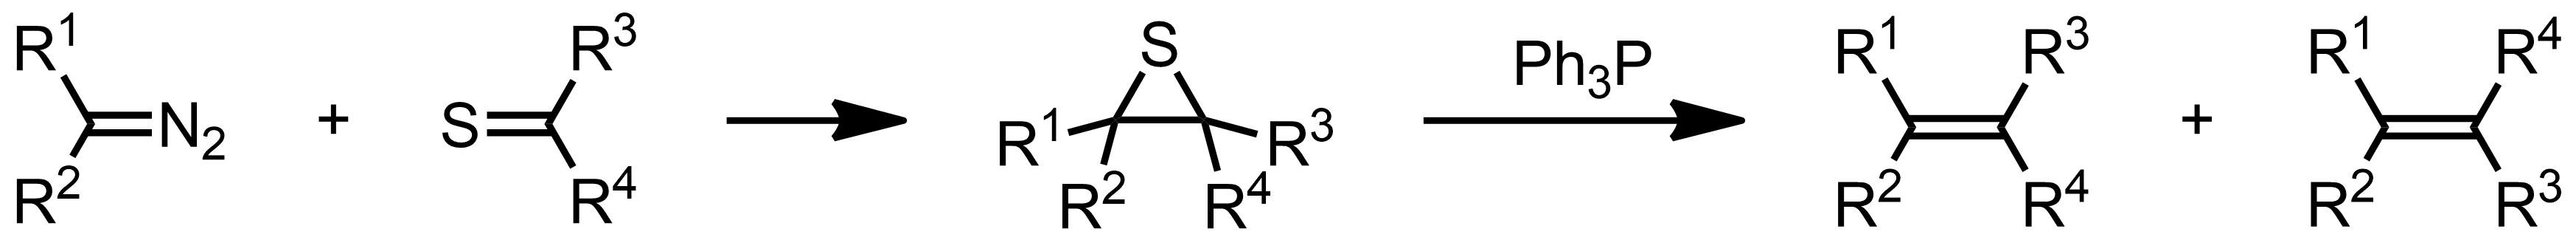 Schematic representation of the Barton-Kellogg Reaction.